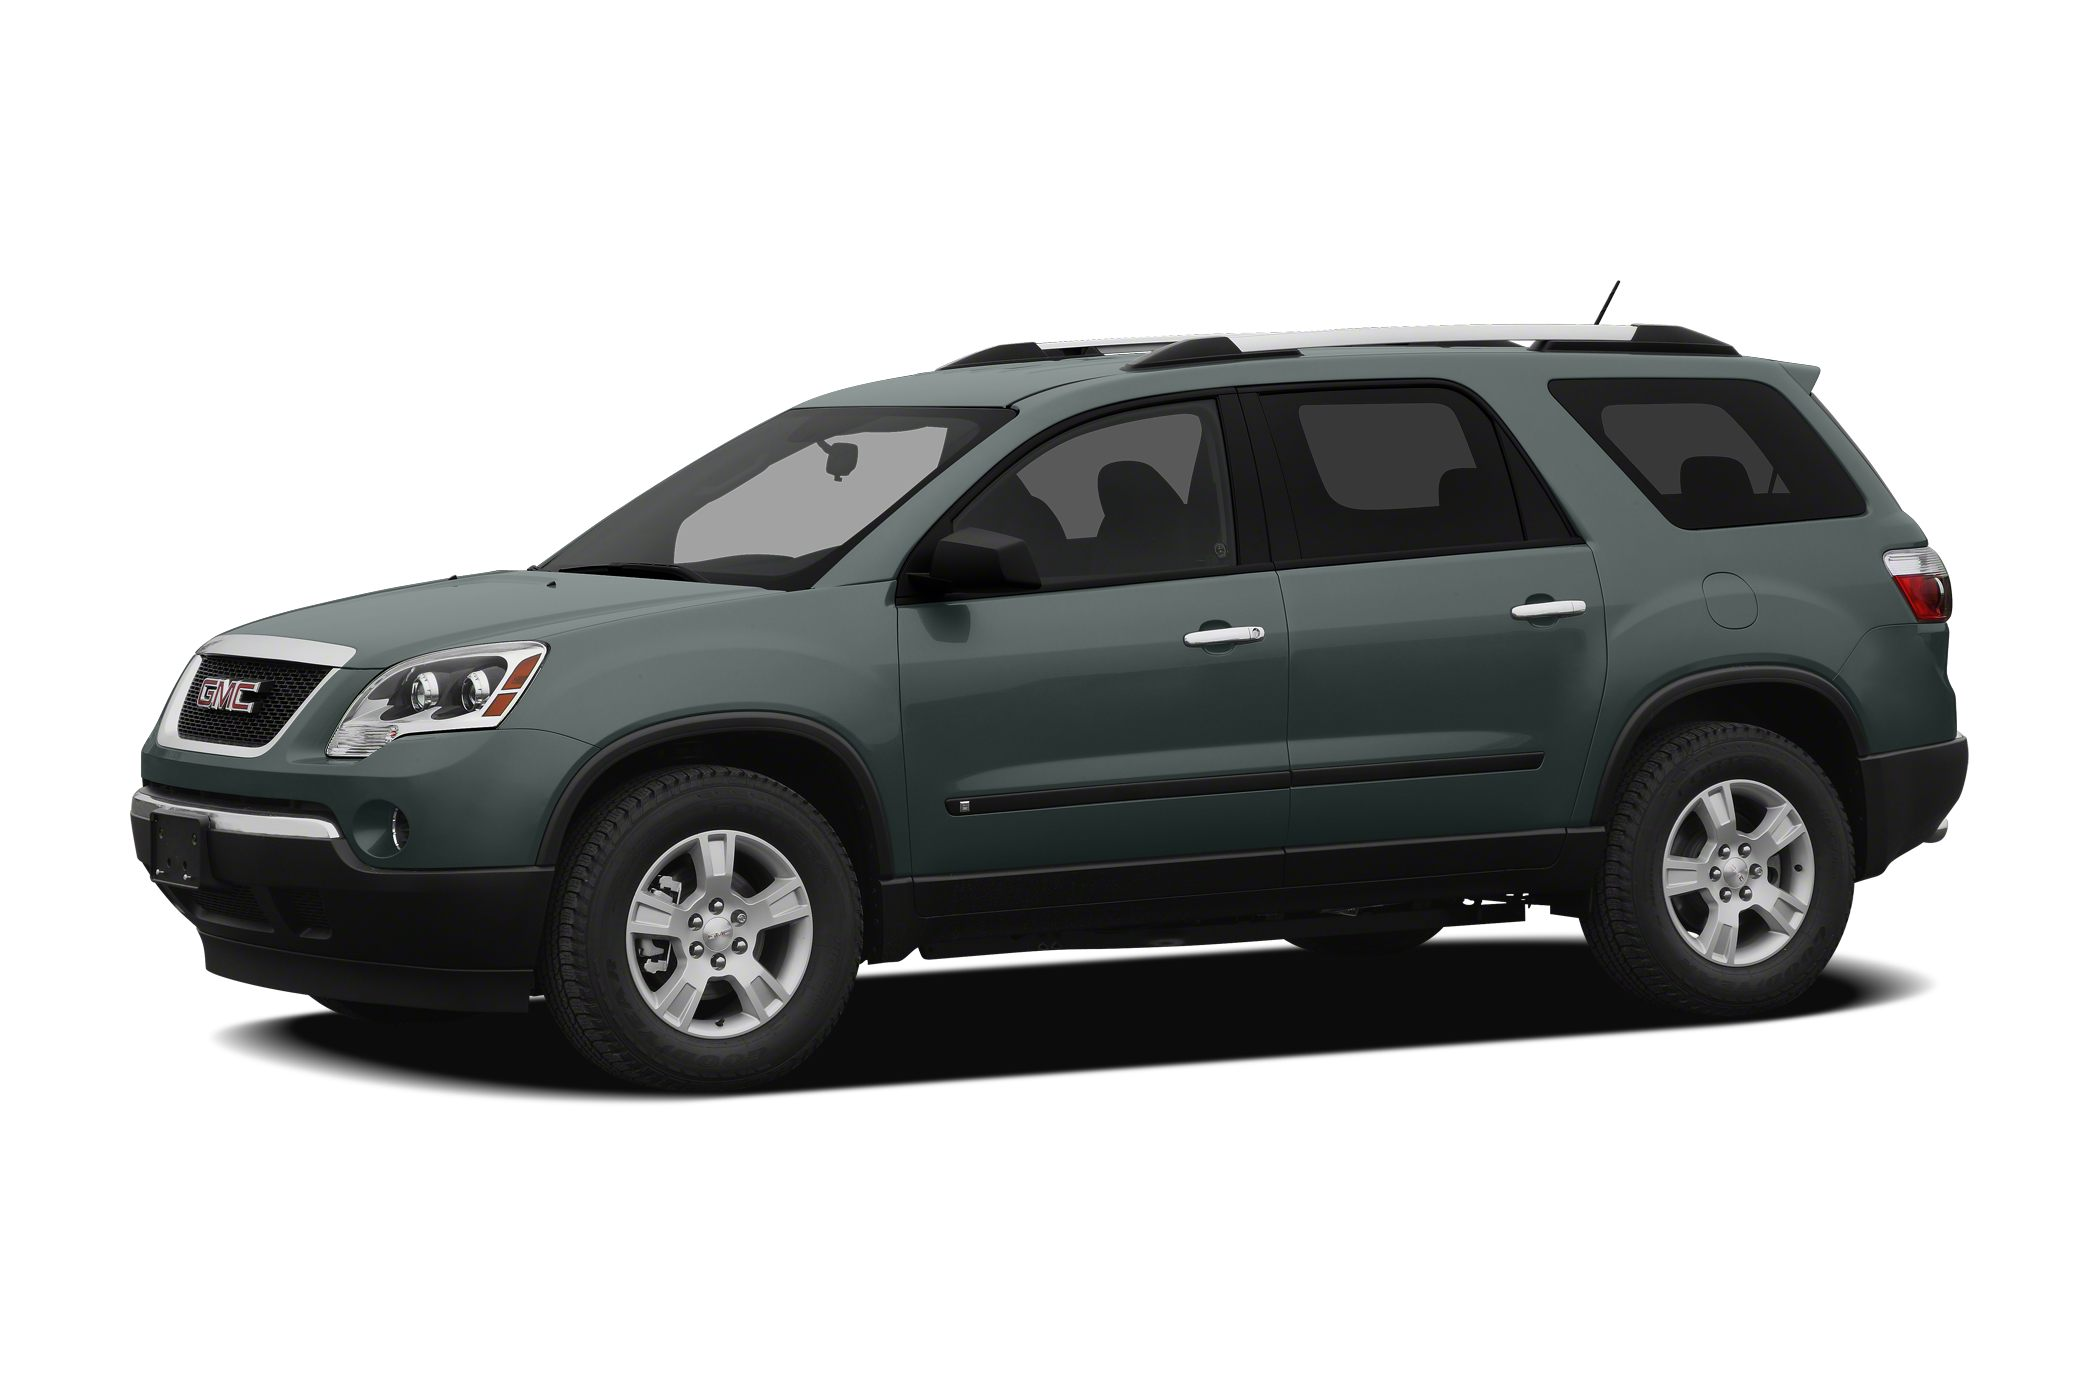 2009 GMC Acadia SLE-1 SUV for sale in Jackson for $15,911 with 110,919 miles